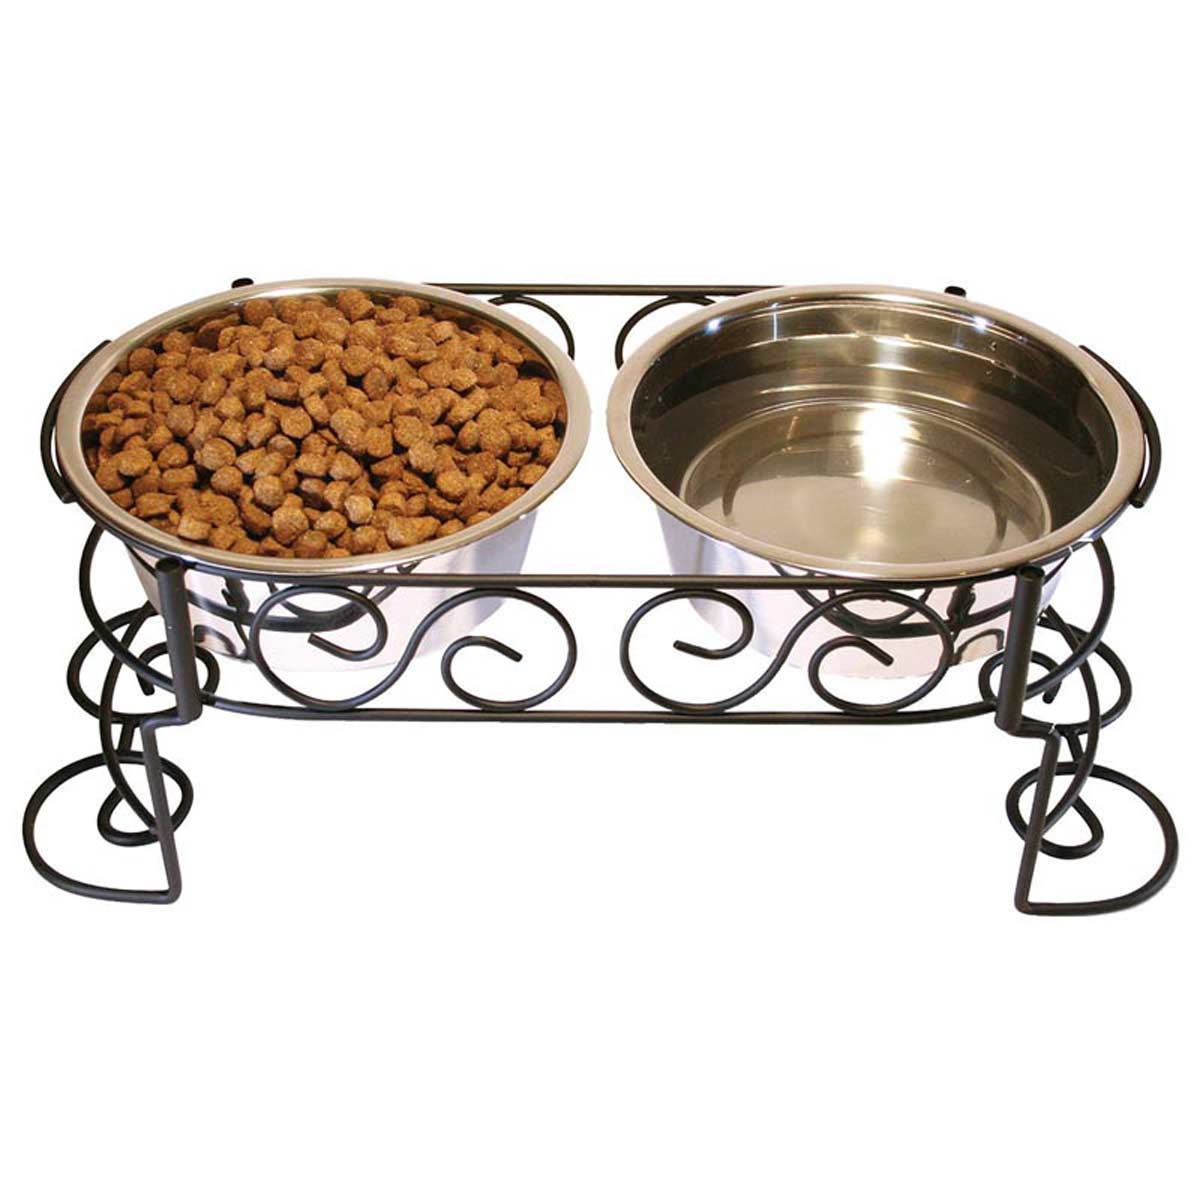 Mediterranean Old World Stainless Steel Double Dog Diner 3 Quart from Ethical